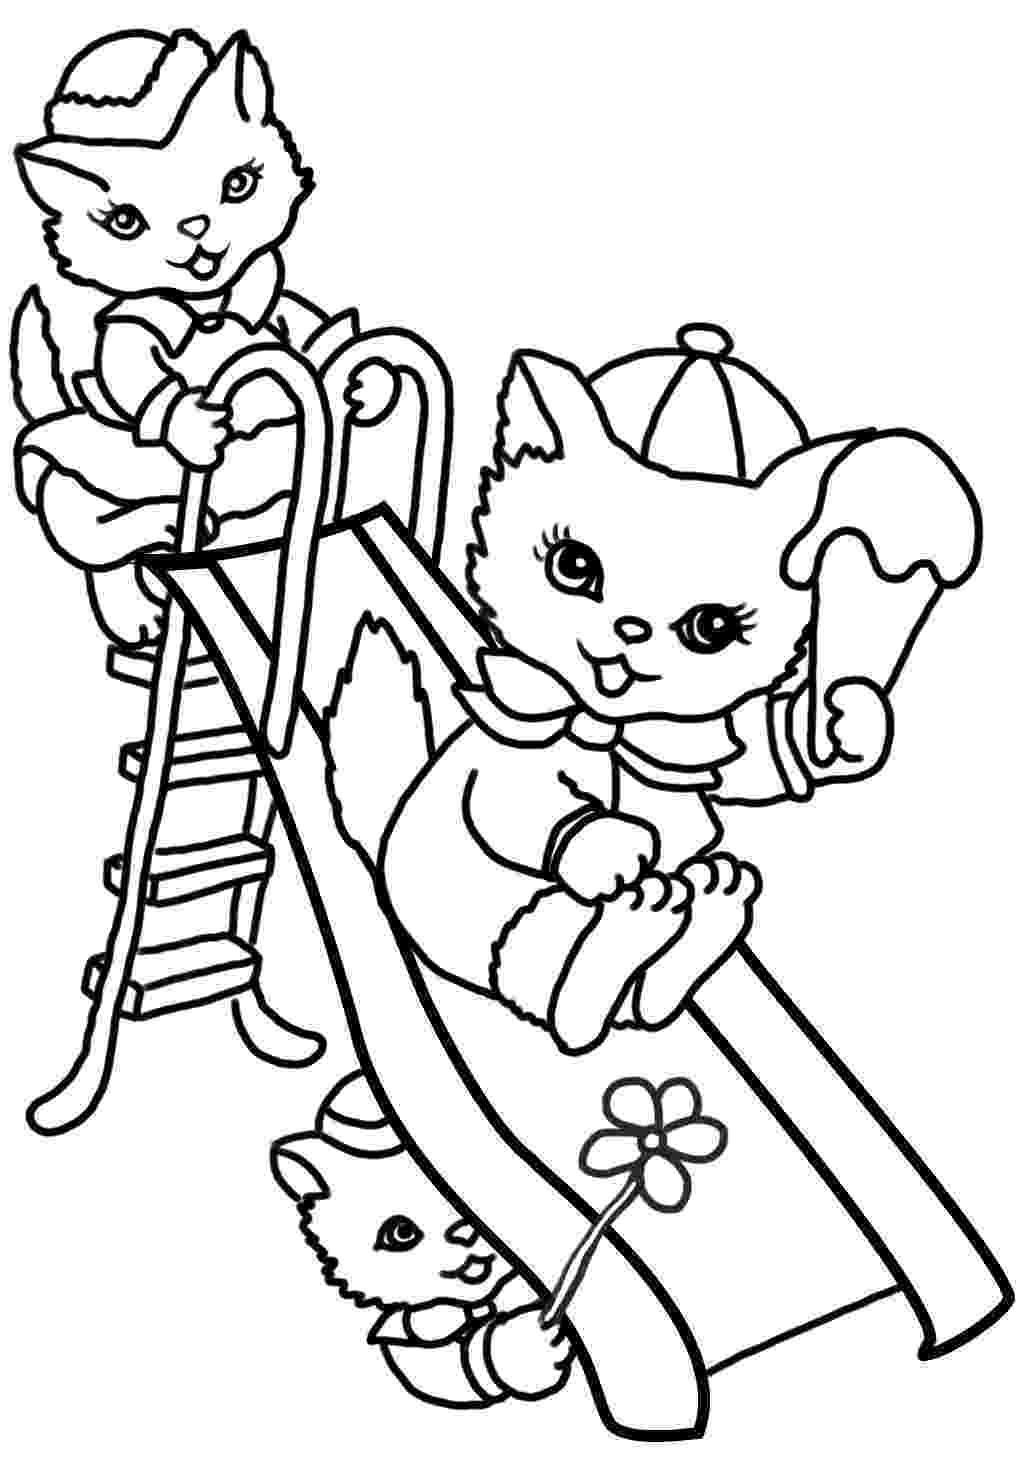 summer coloring sheets summer coloring pages 360coloringpages summer coloring sheets